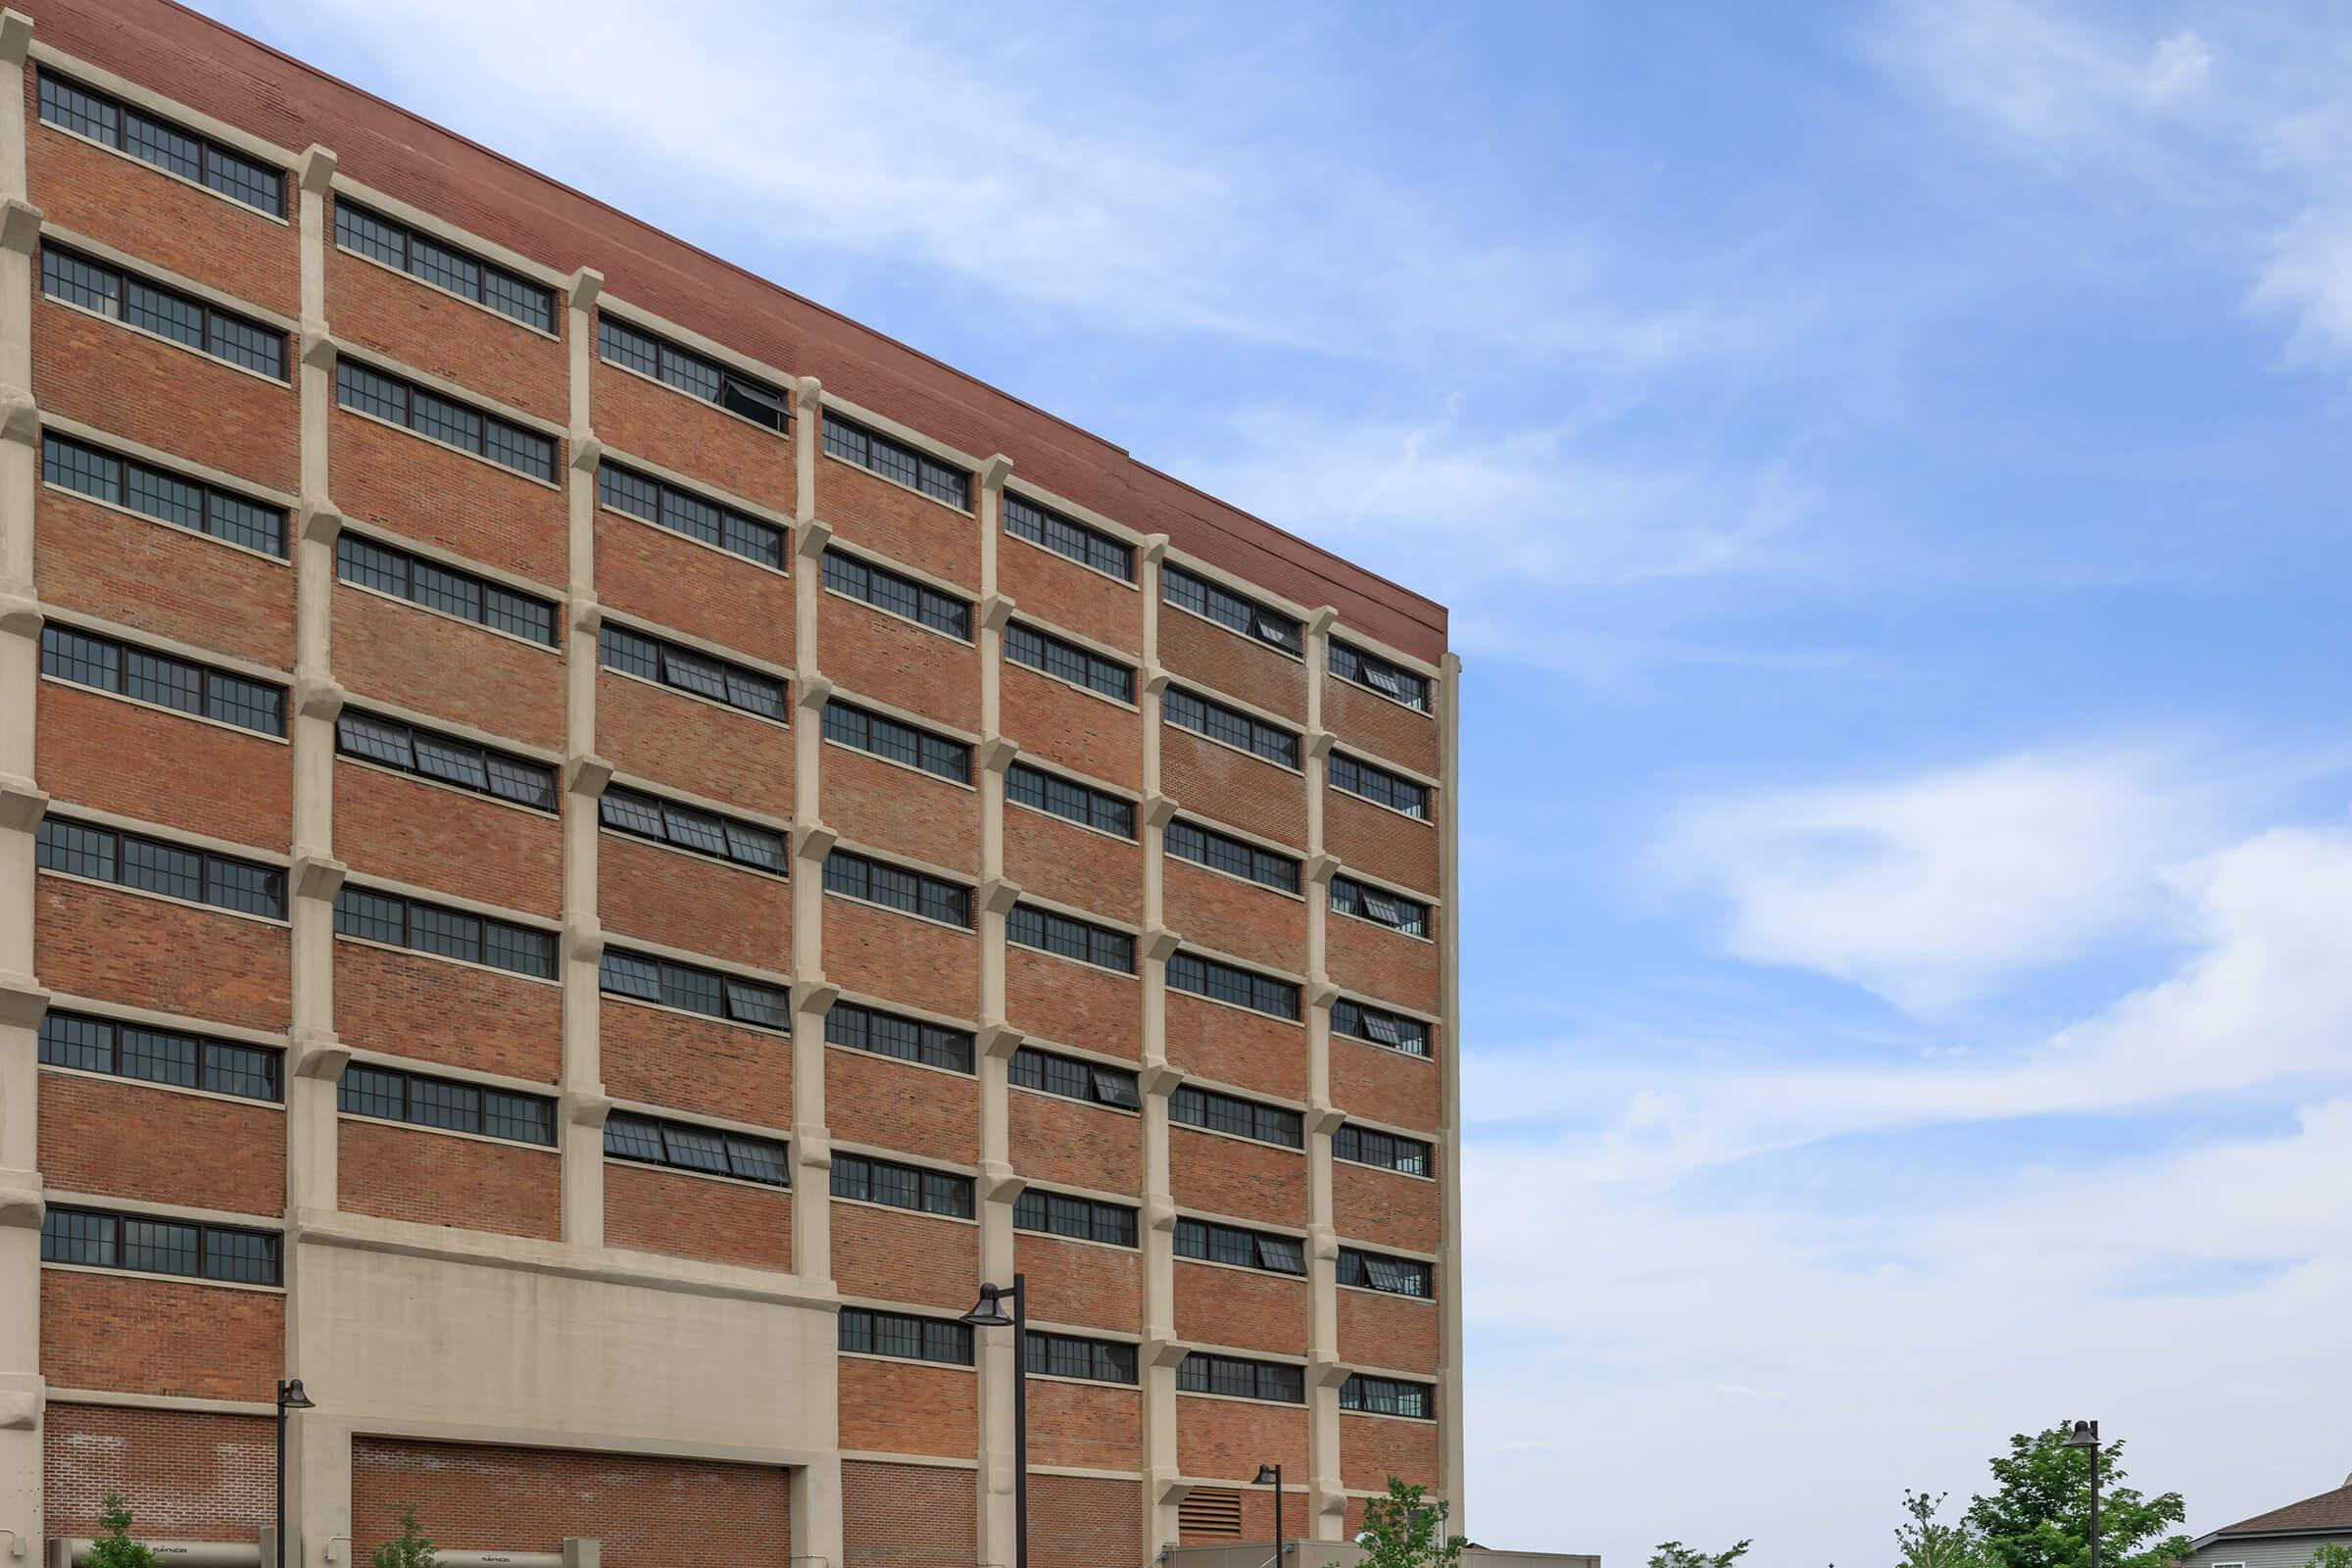 a large brick building